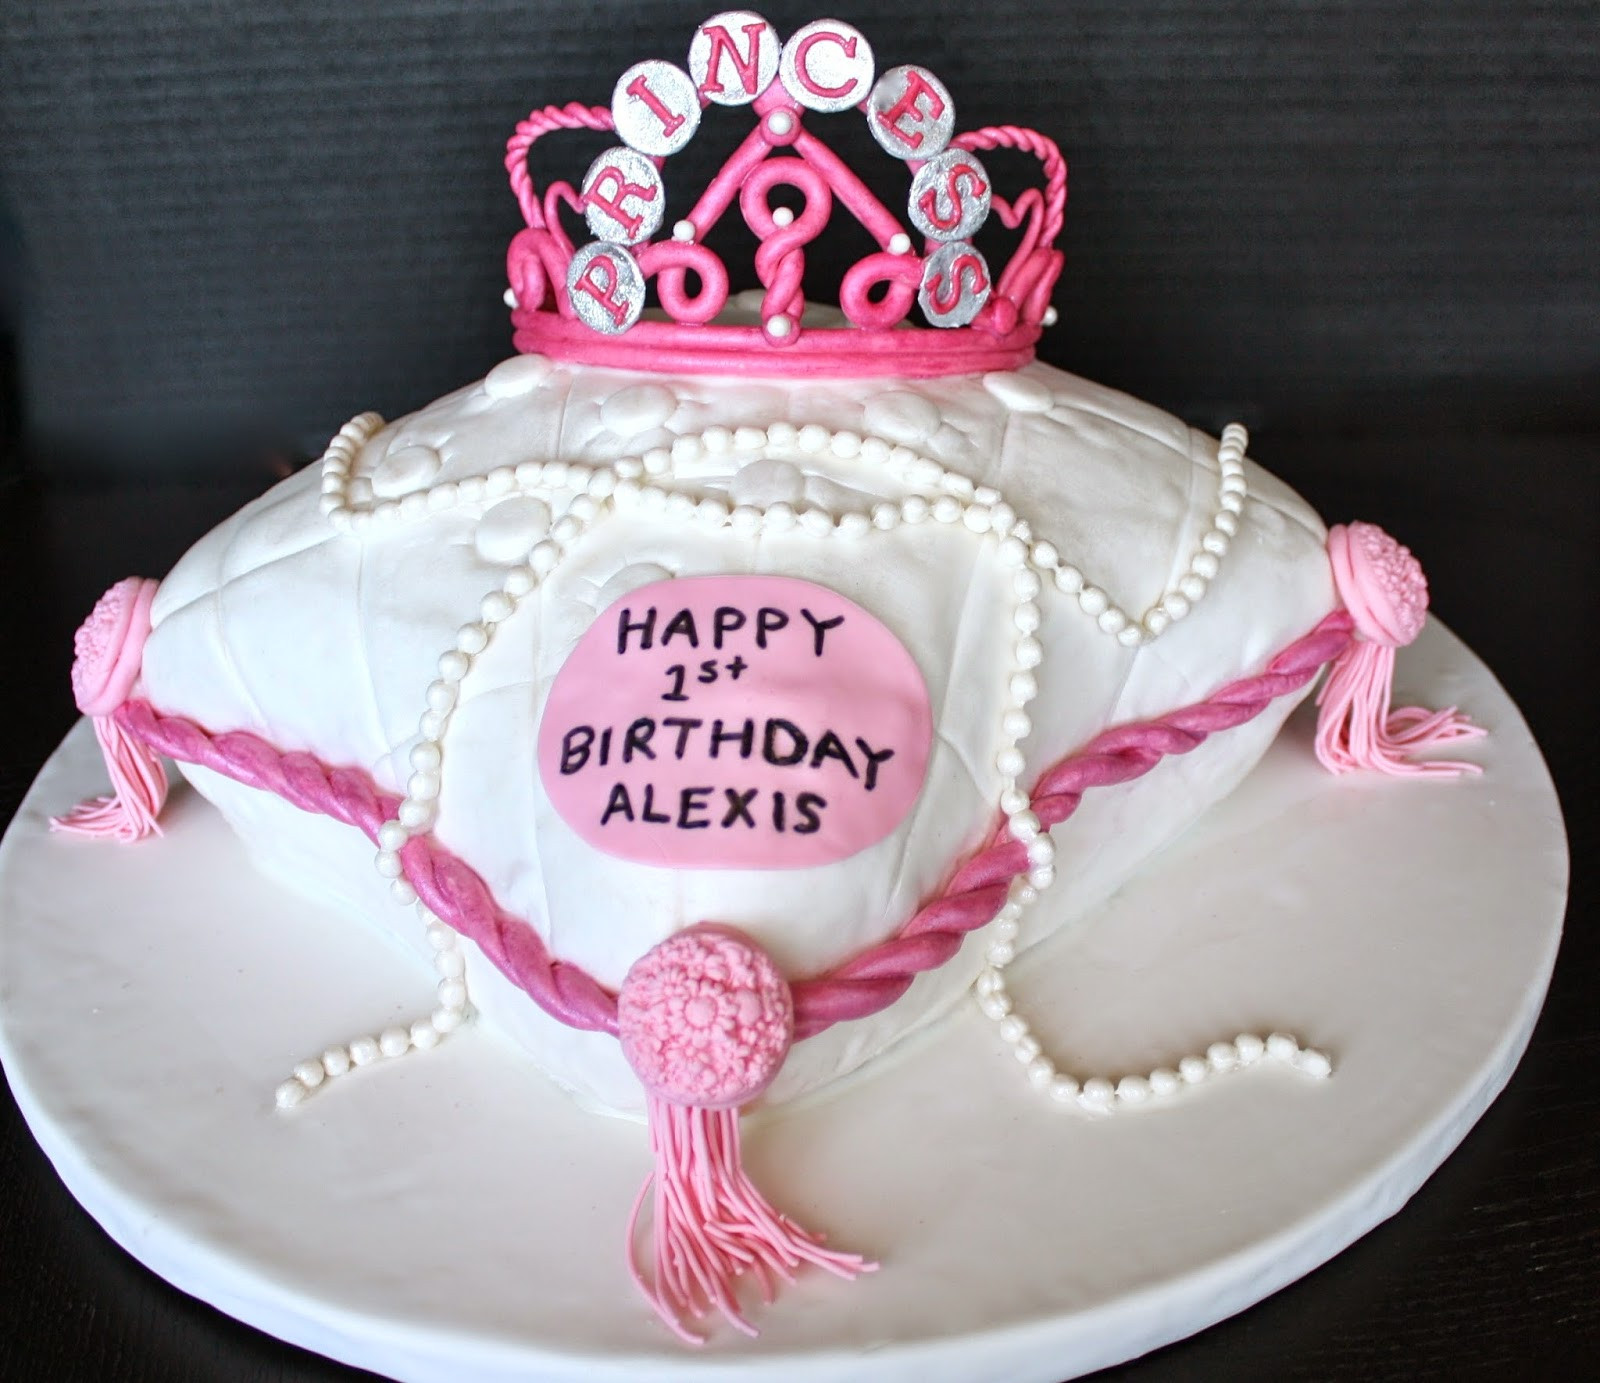 Best ideas about Cake Happy Birthday . Save or Pin Happy Birthday Cake Now.